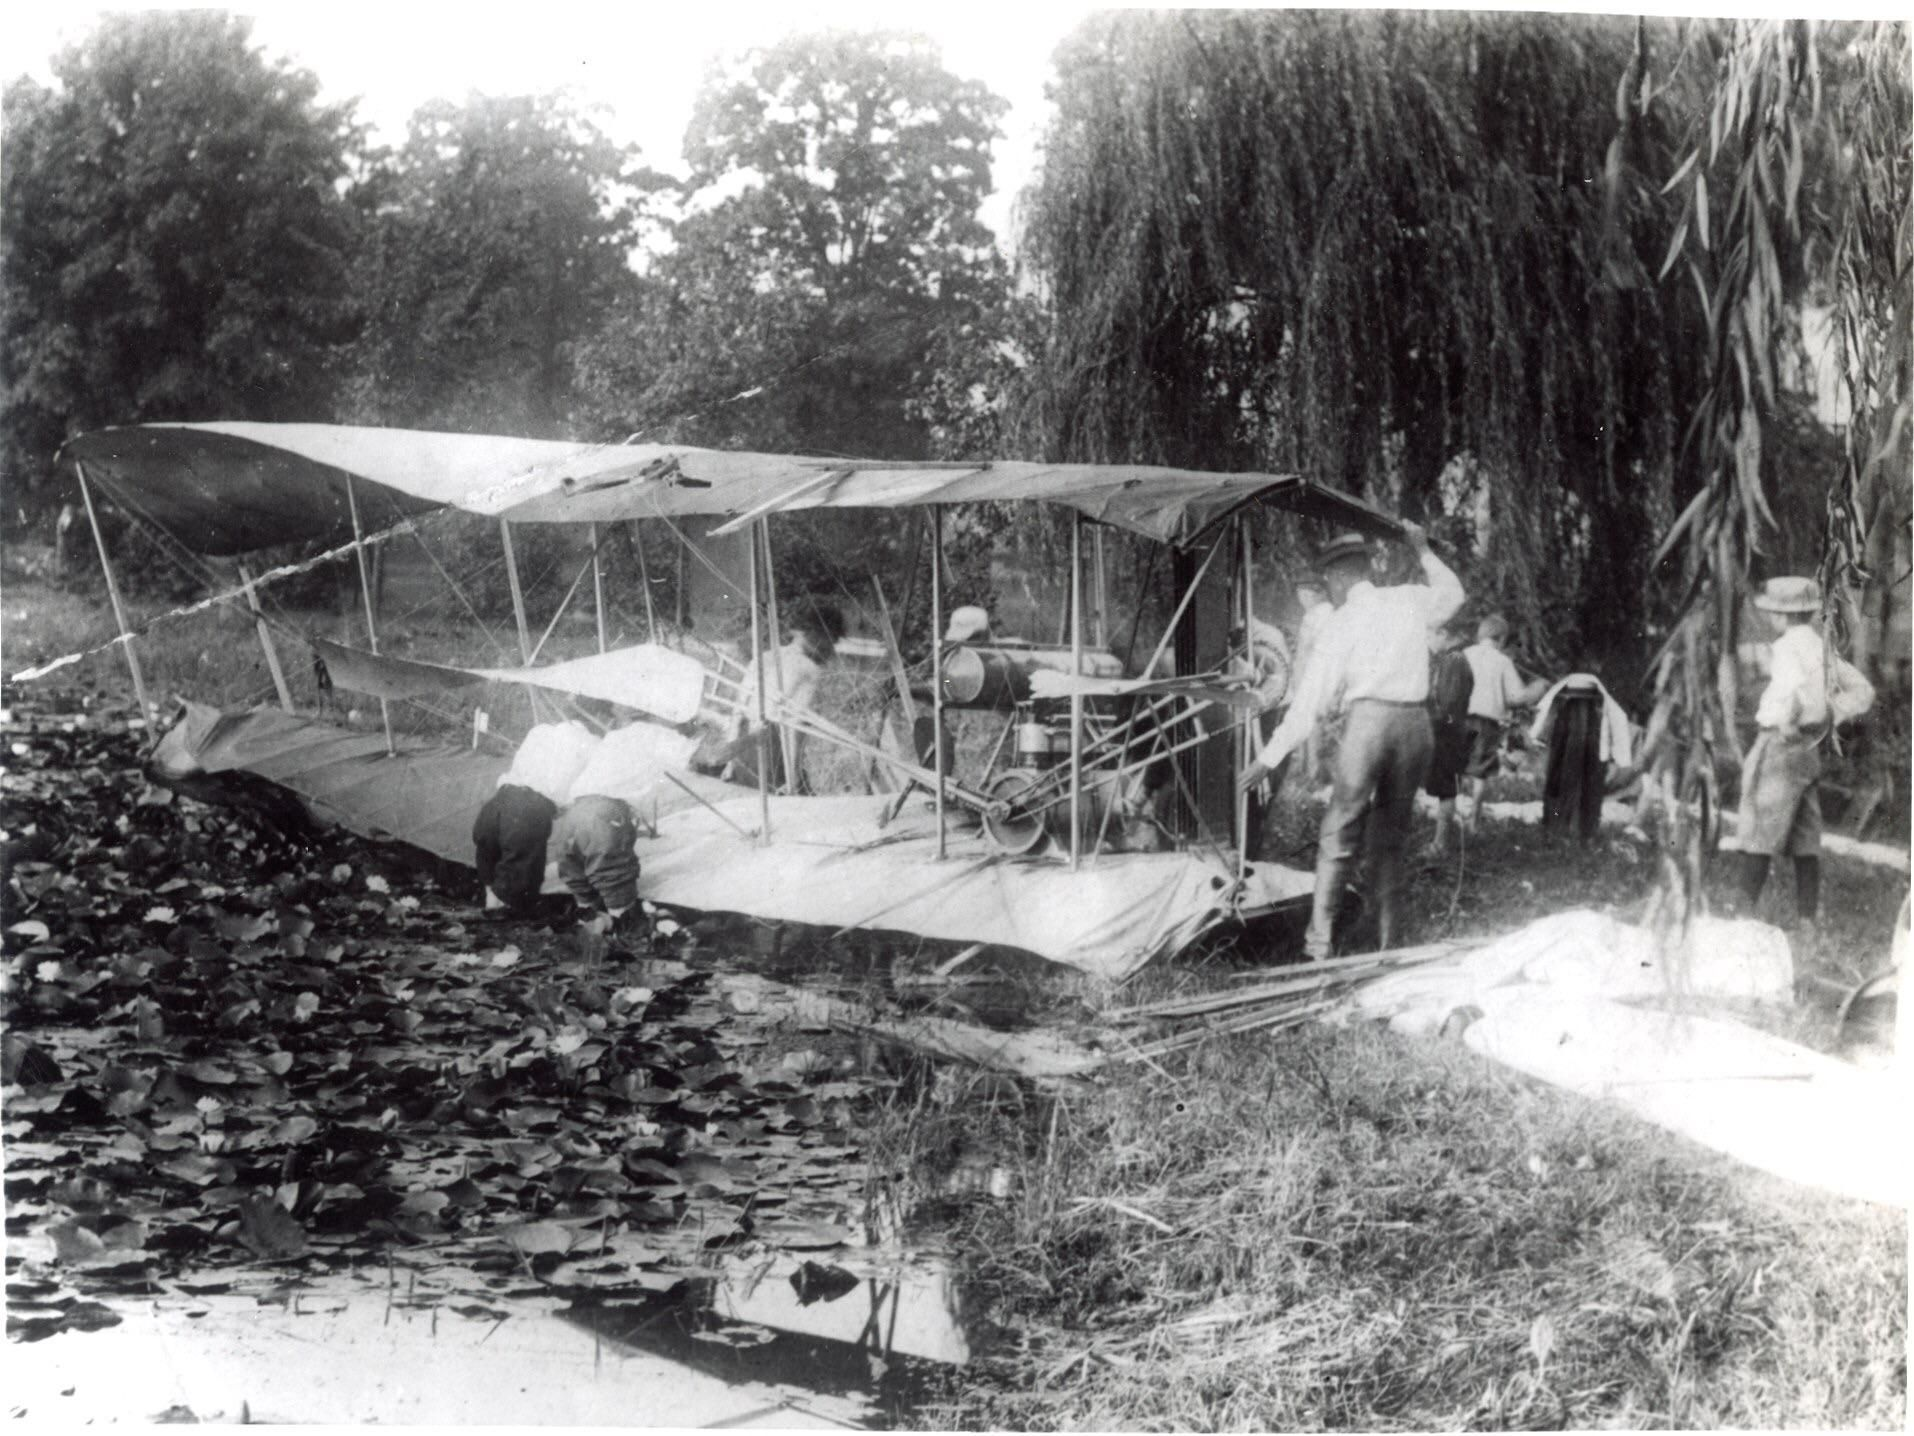 Wright Brothers' aircraft following crashing into a pond in the town park in Parkersburg, Wes... #westvirginia